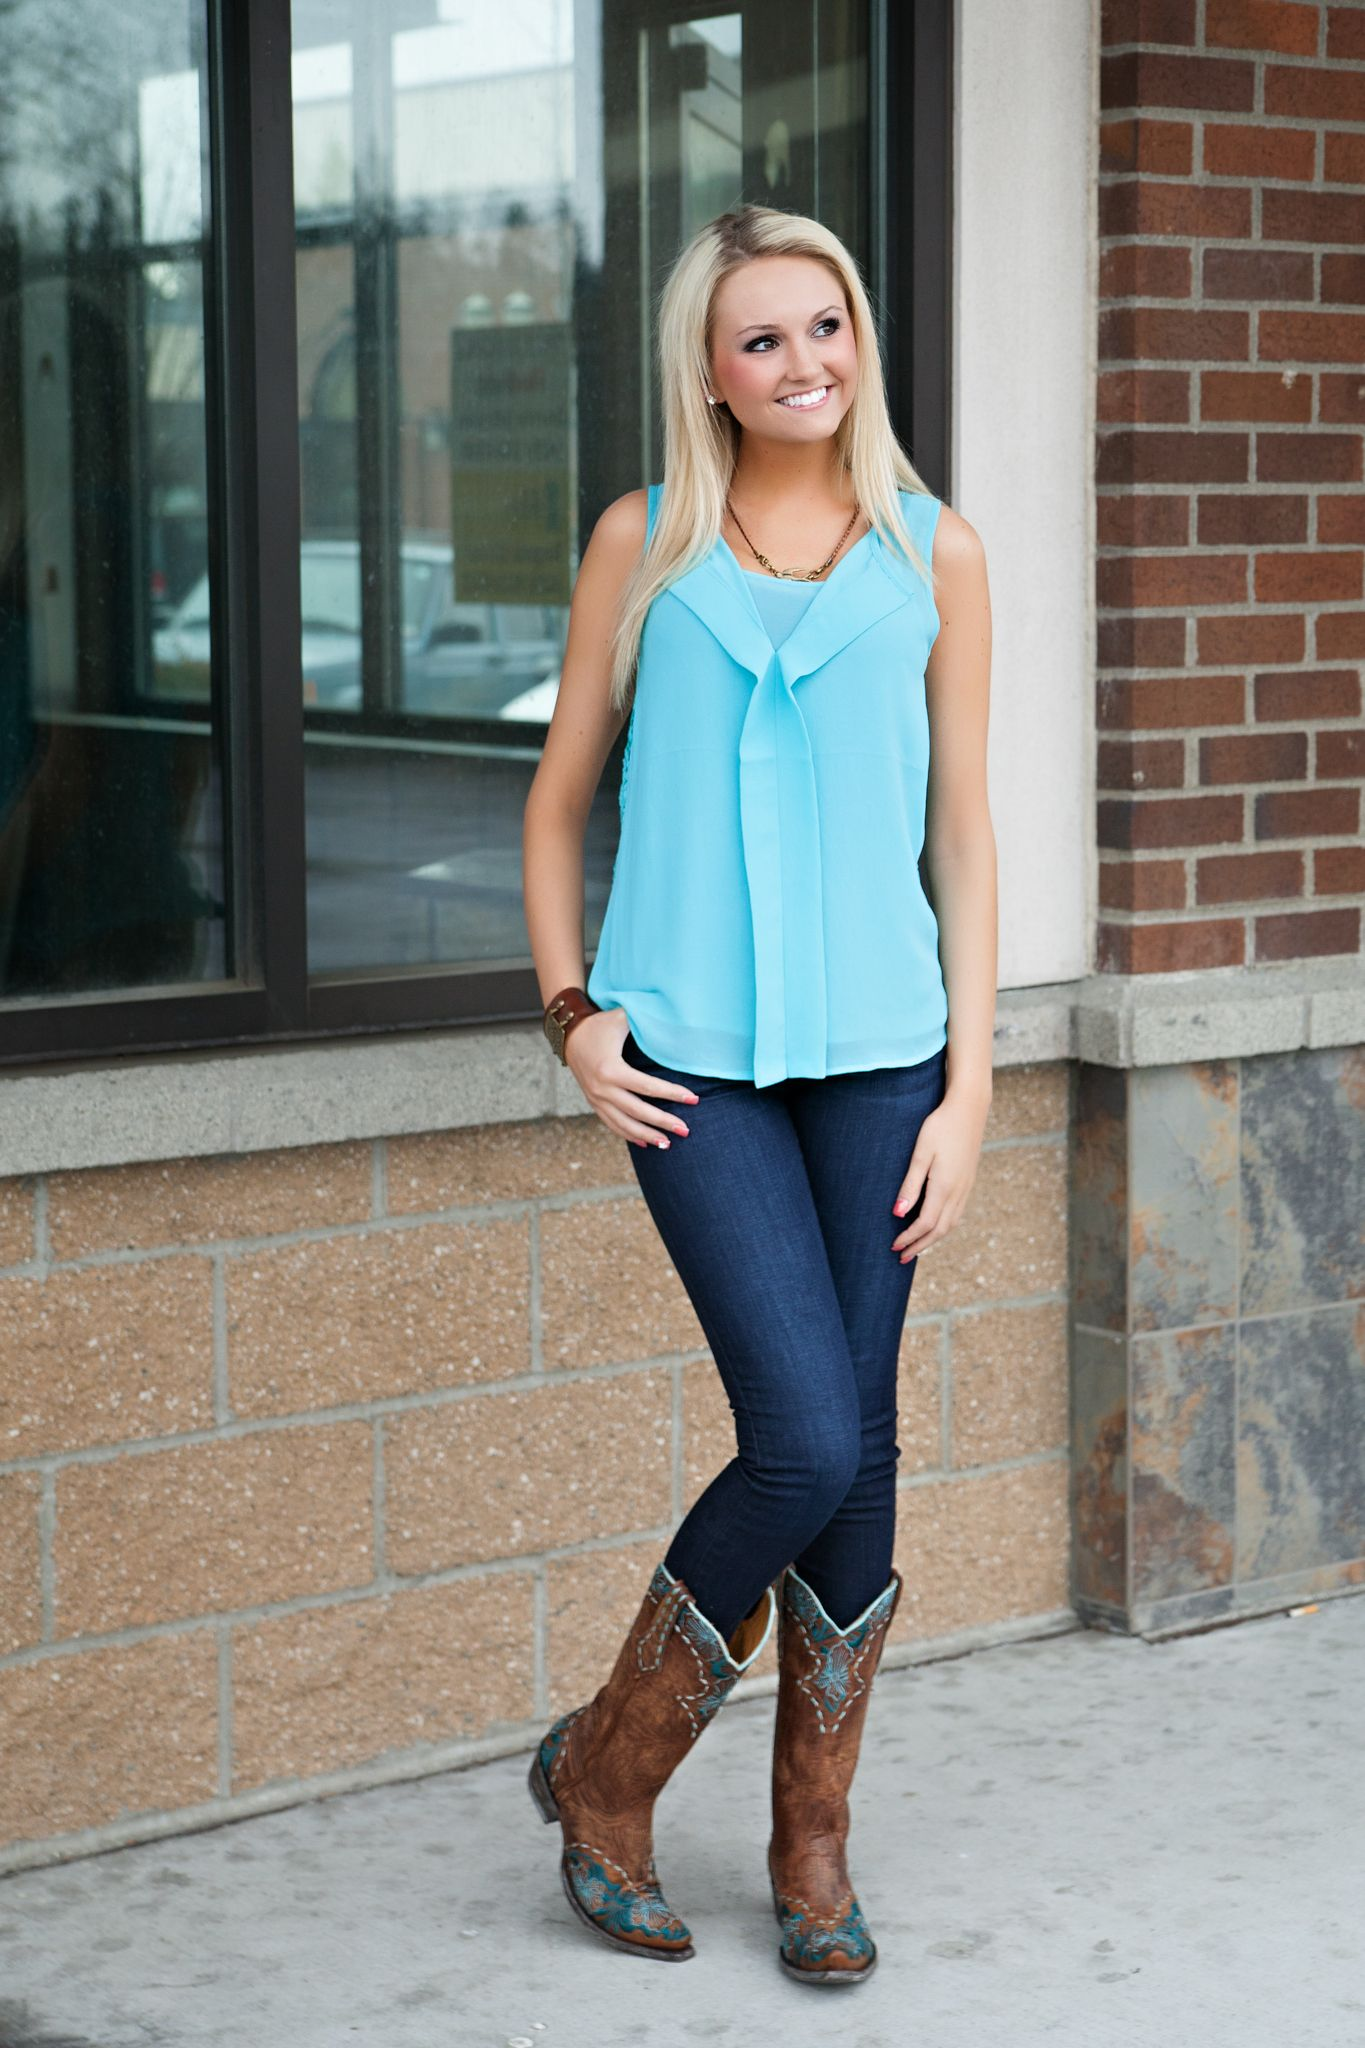 Cowgirl Style Boots - Boot Hto